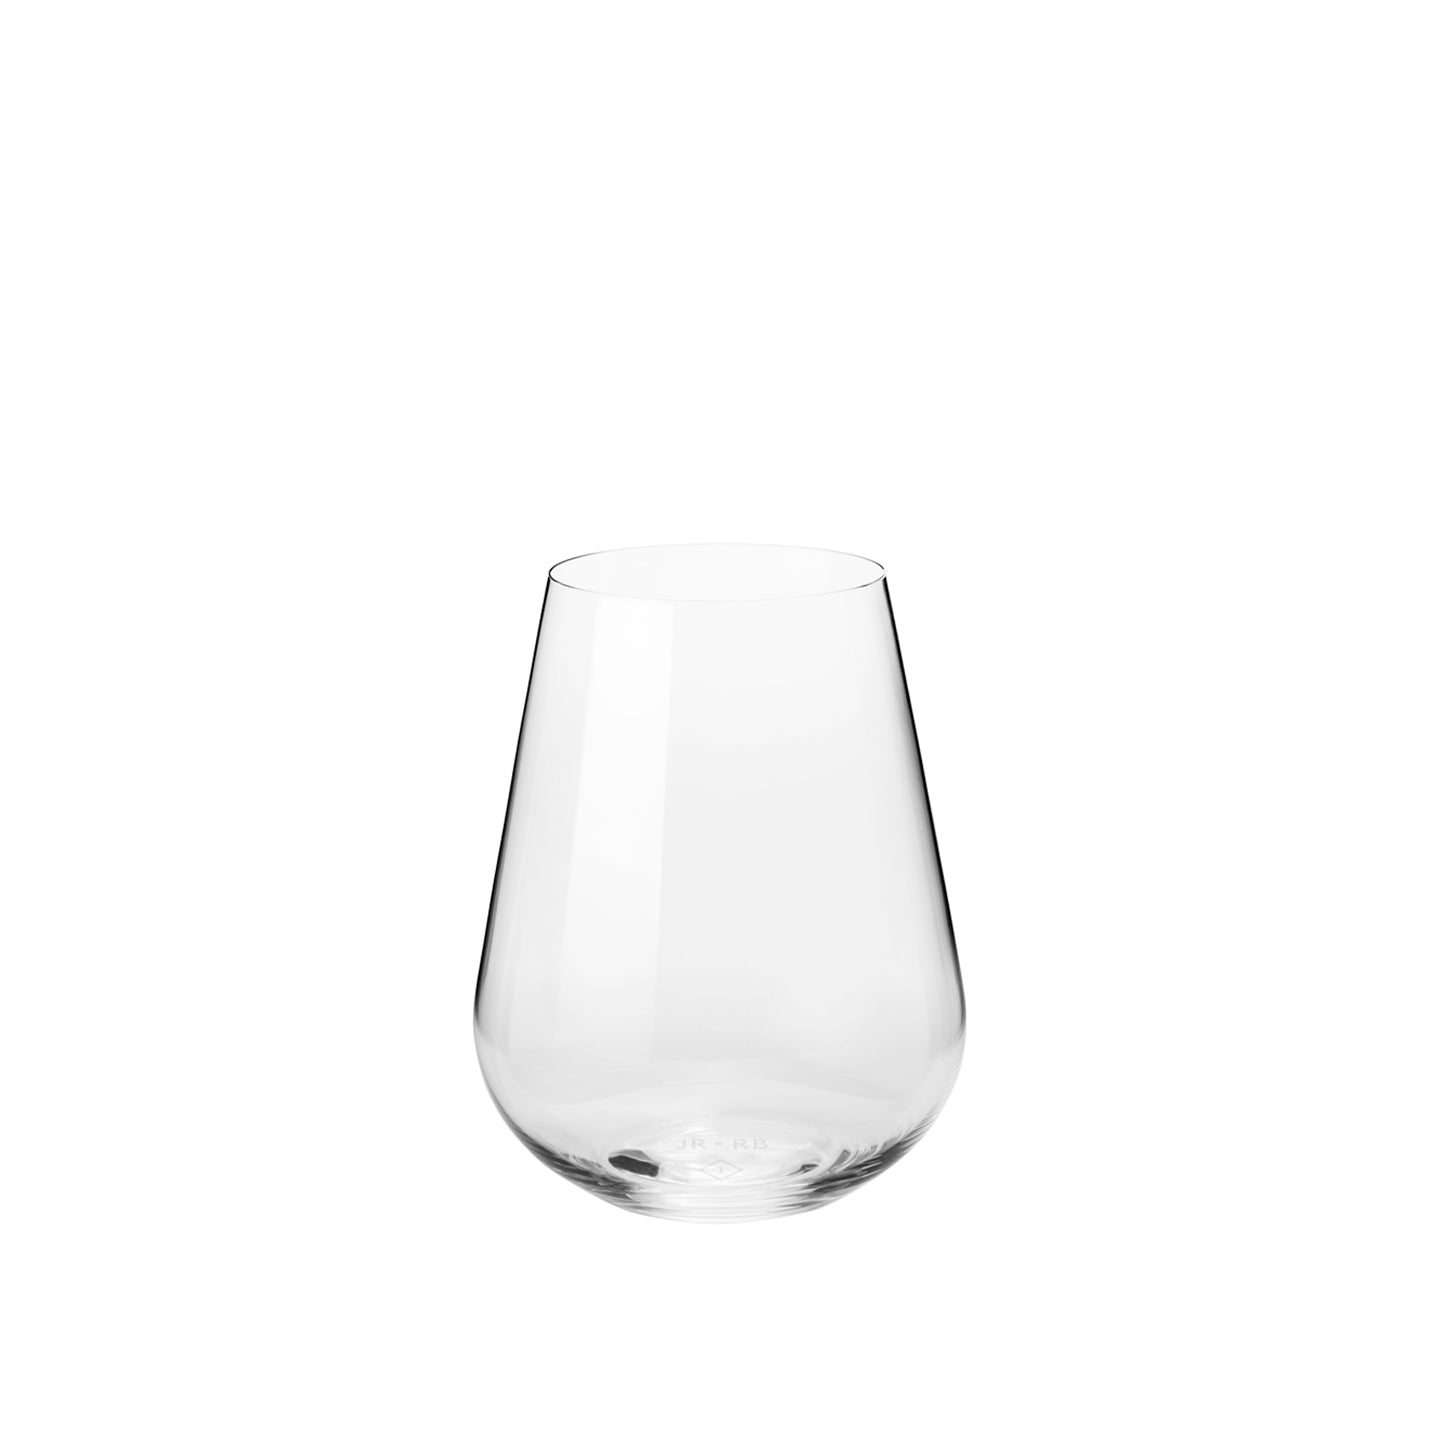 Richard Brendon + Jancis Robinson Water Glasses / Set of 6